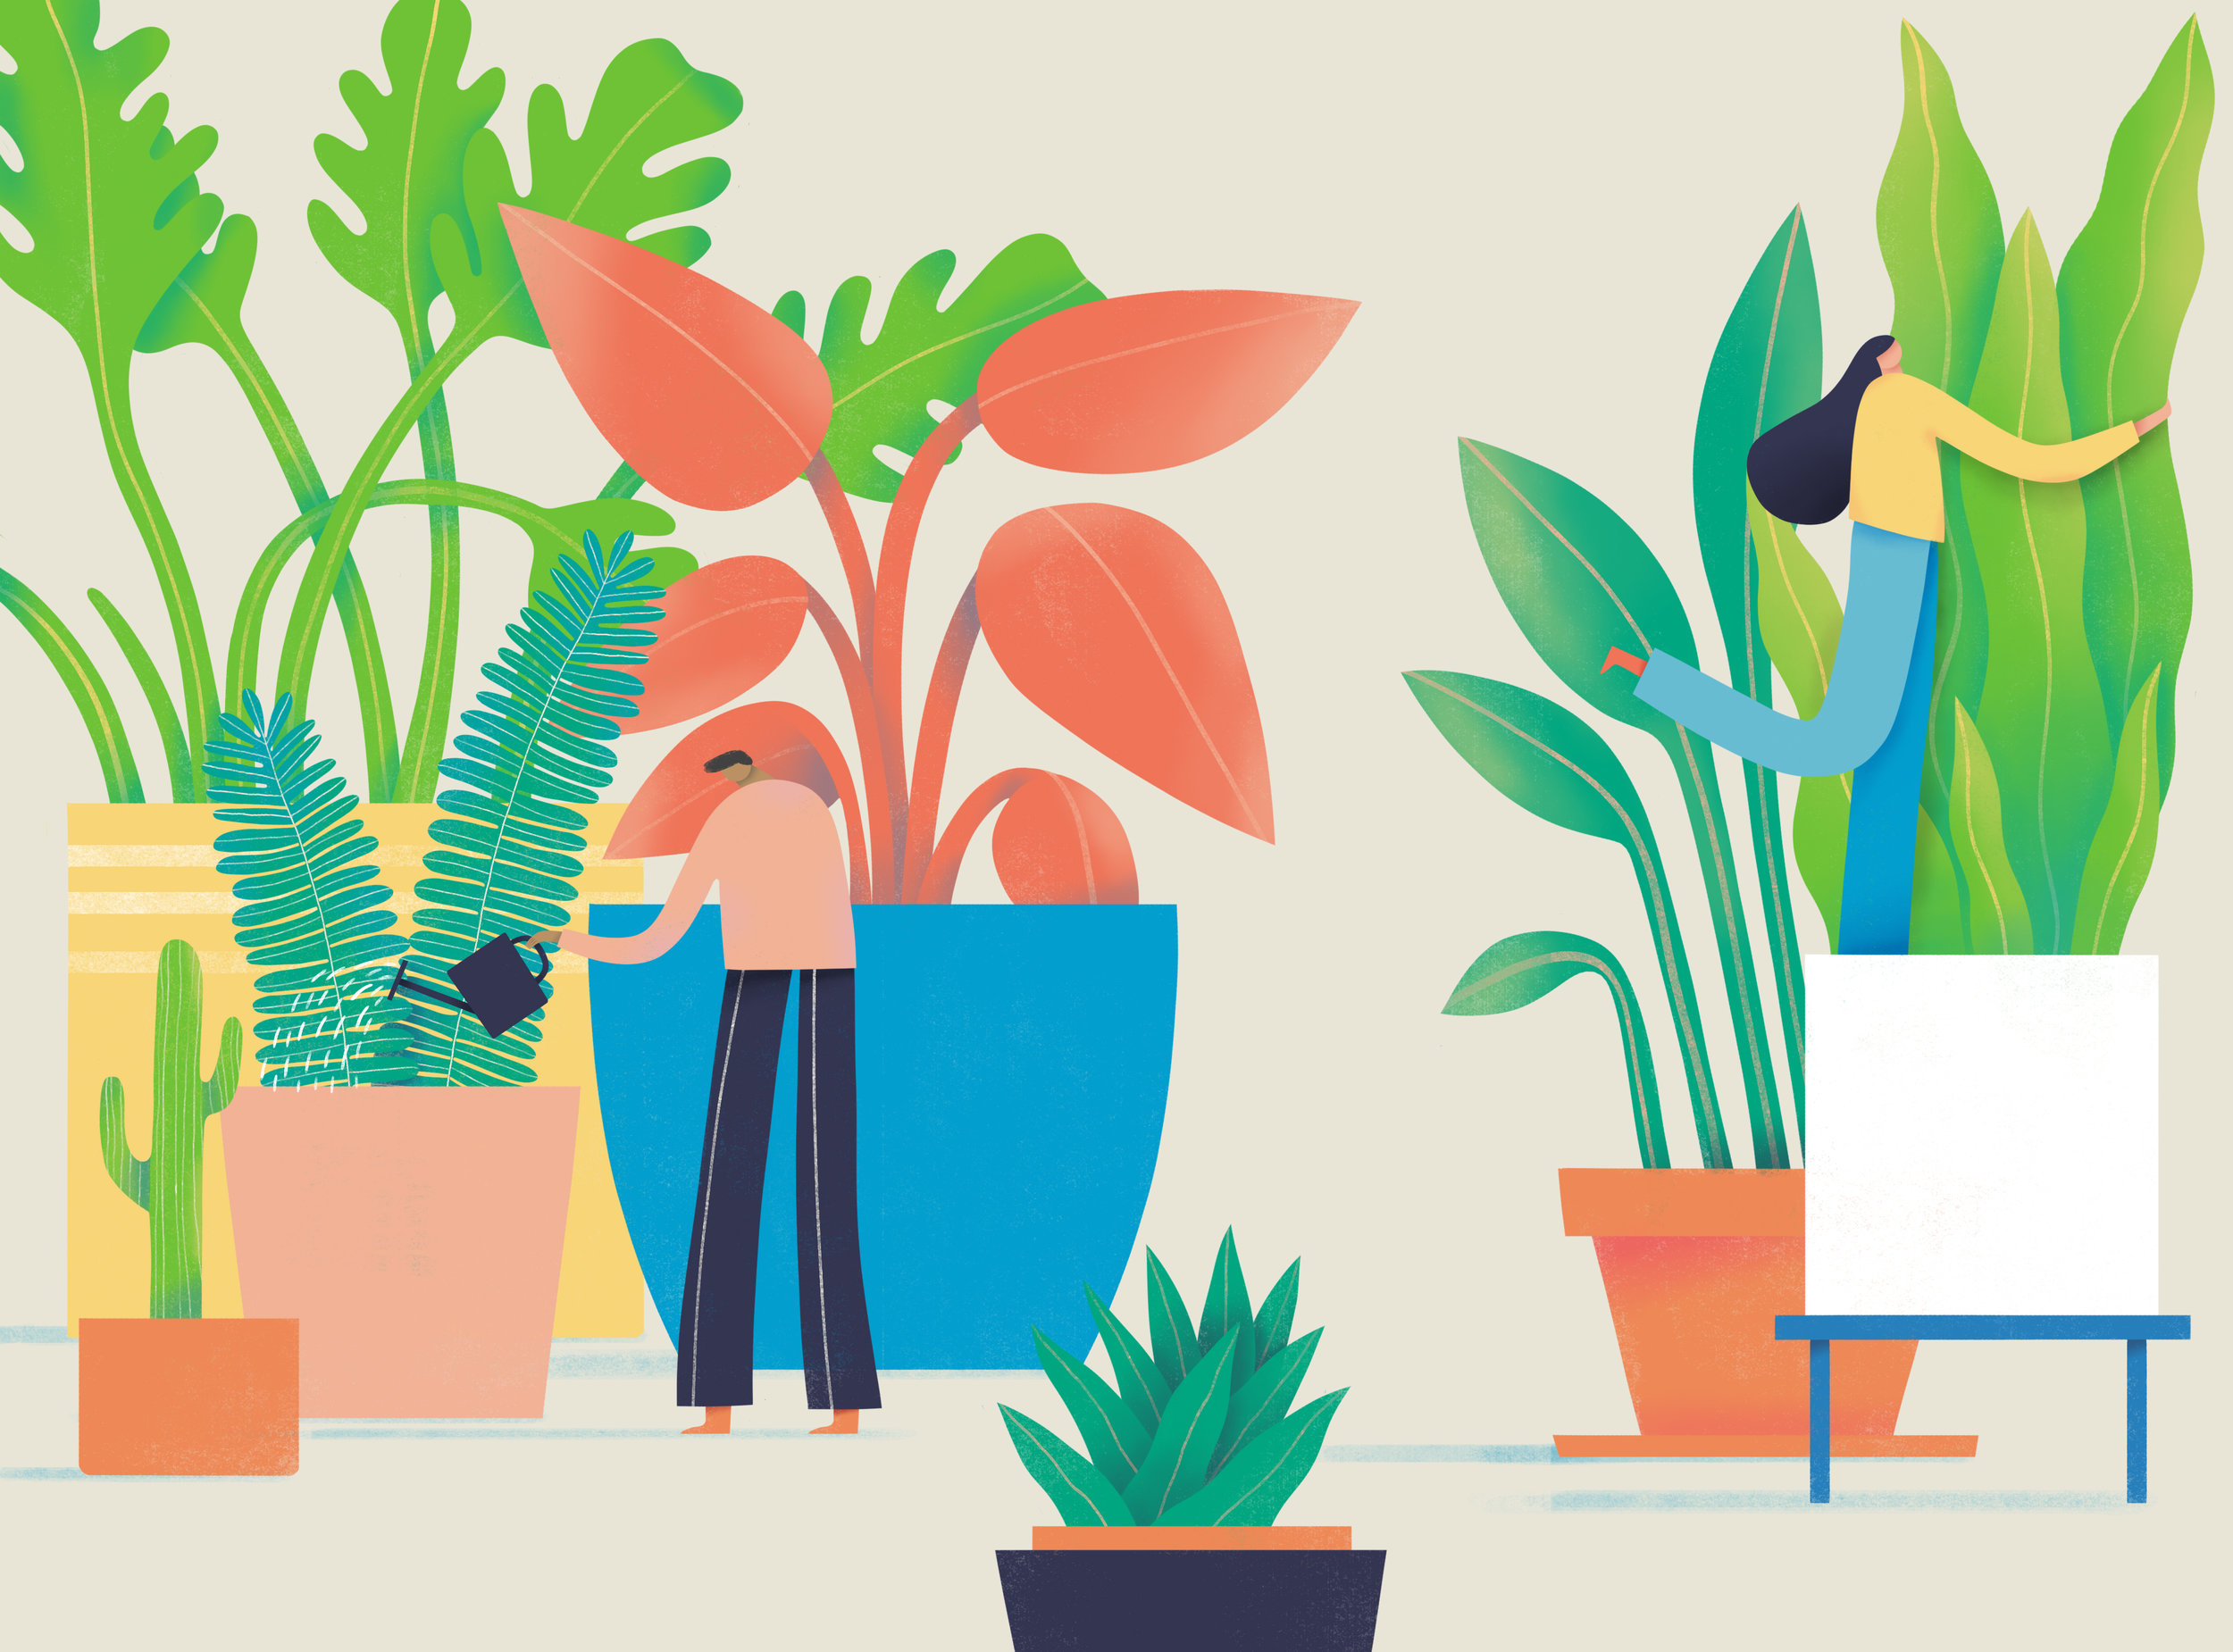 Grow your indoor jungle. - Ever dream of having one of those dreamy houseplant homes? Yes, us too. But before you blow your bank account at that fancy plant shop down the street, we want to help you make sure you know your plants. Like REALLY know your plants. Because there are so many ways to grow your indoor jungle without maxing out your credit card. . .Enroll Now ➝